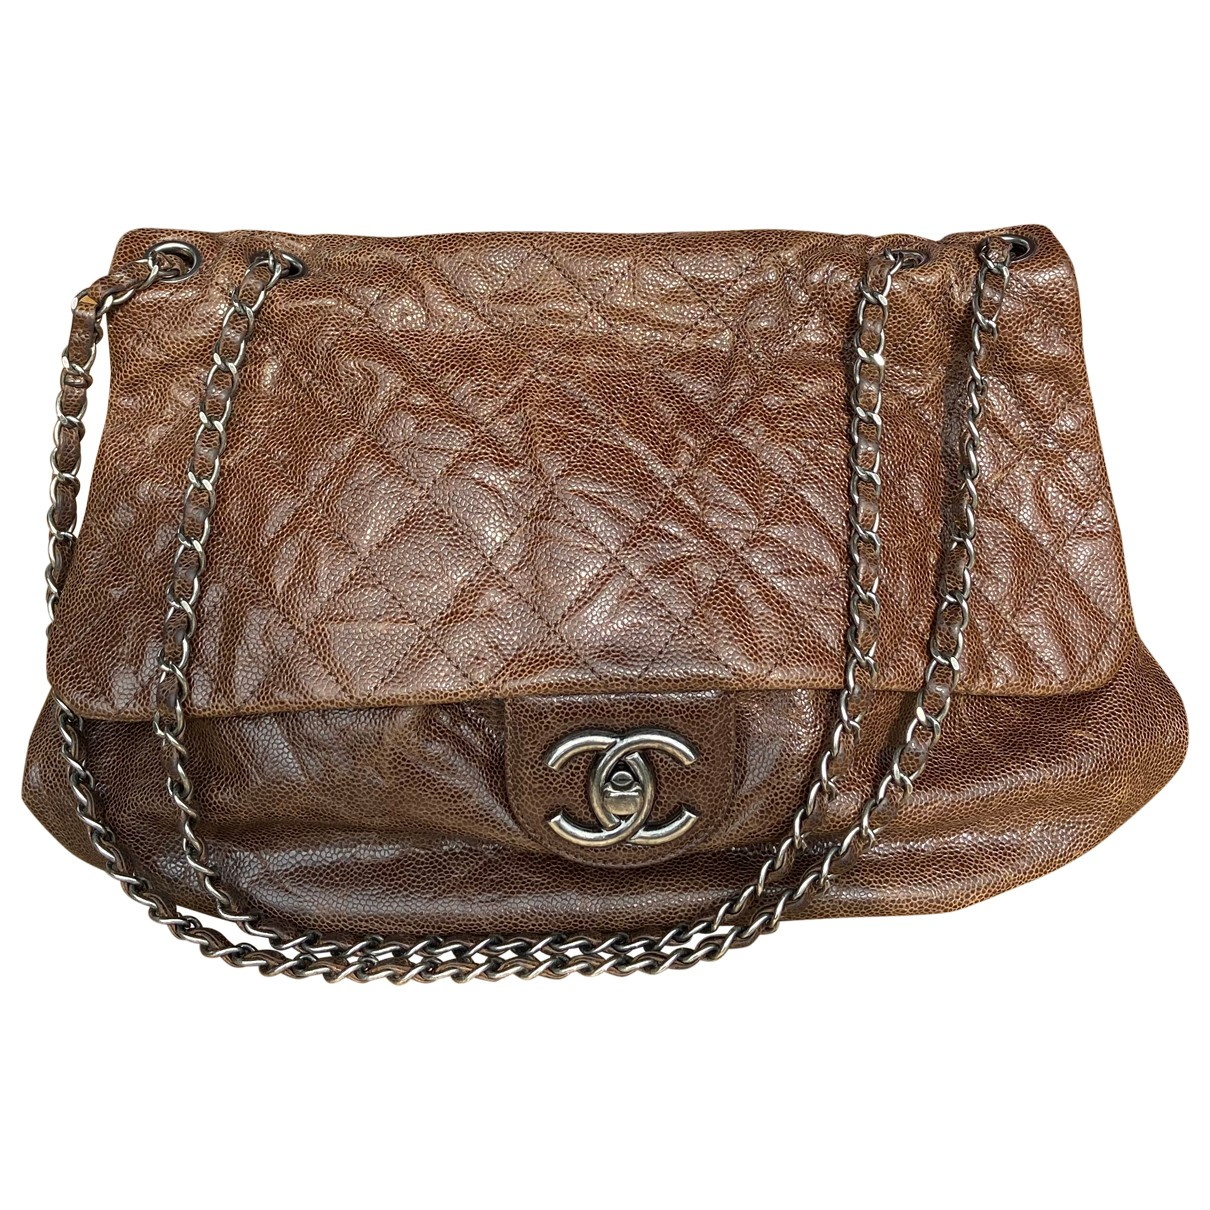 Chanel Timeless/Classique Clutch in  Braun Leder